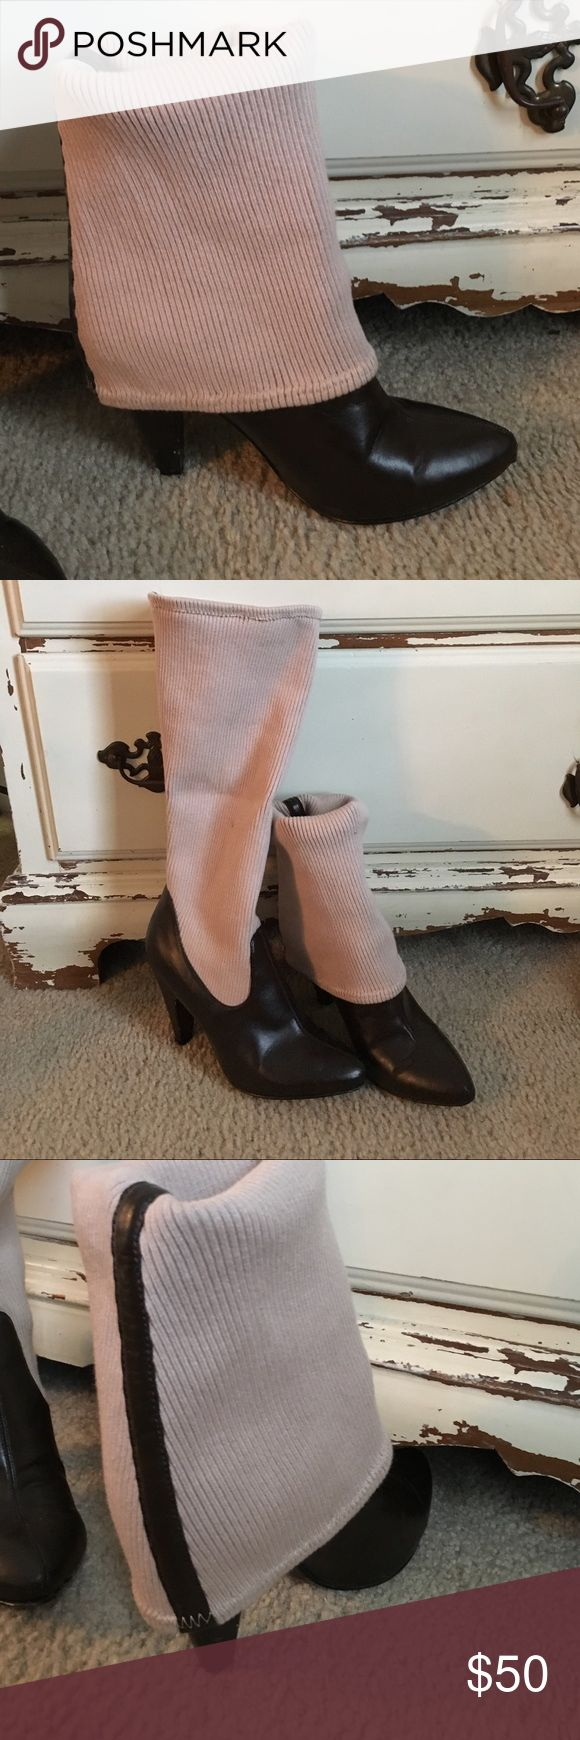 Jessica Simpson boots These are an amazing pair of boots!  You can wear them slouchy, short or stretched out like leggings.  They have a knick on the heel, but definitely not noticeable when wearing them. Jessica Simpson Shoes Heeled Boots